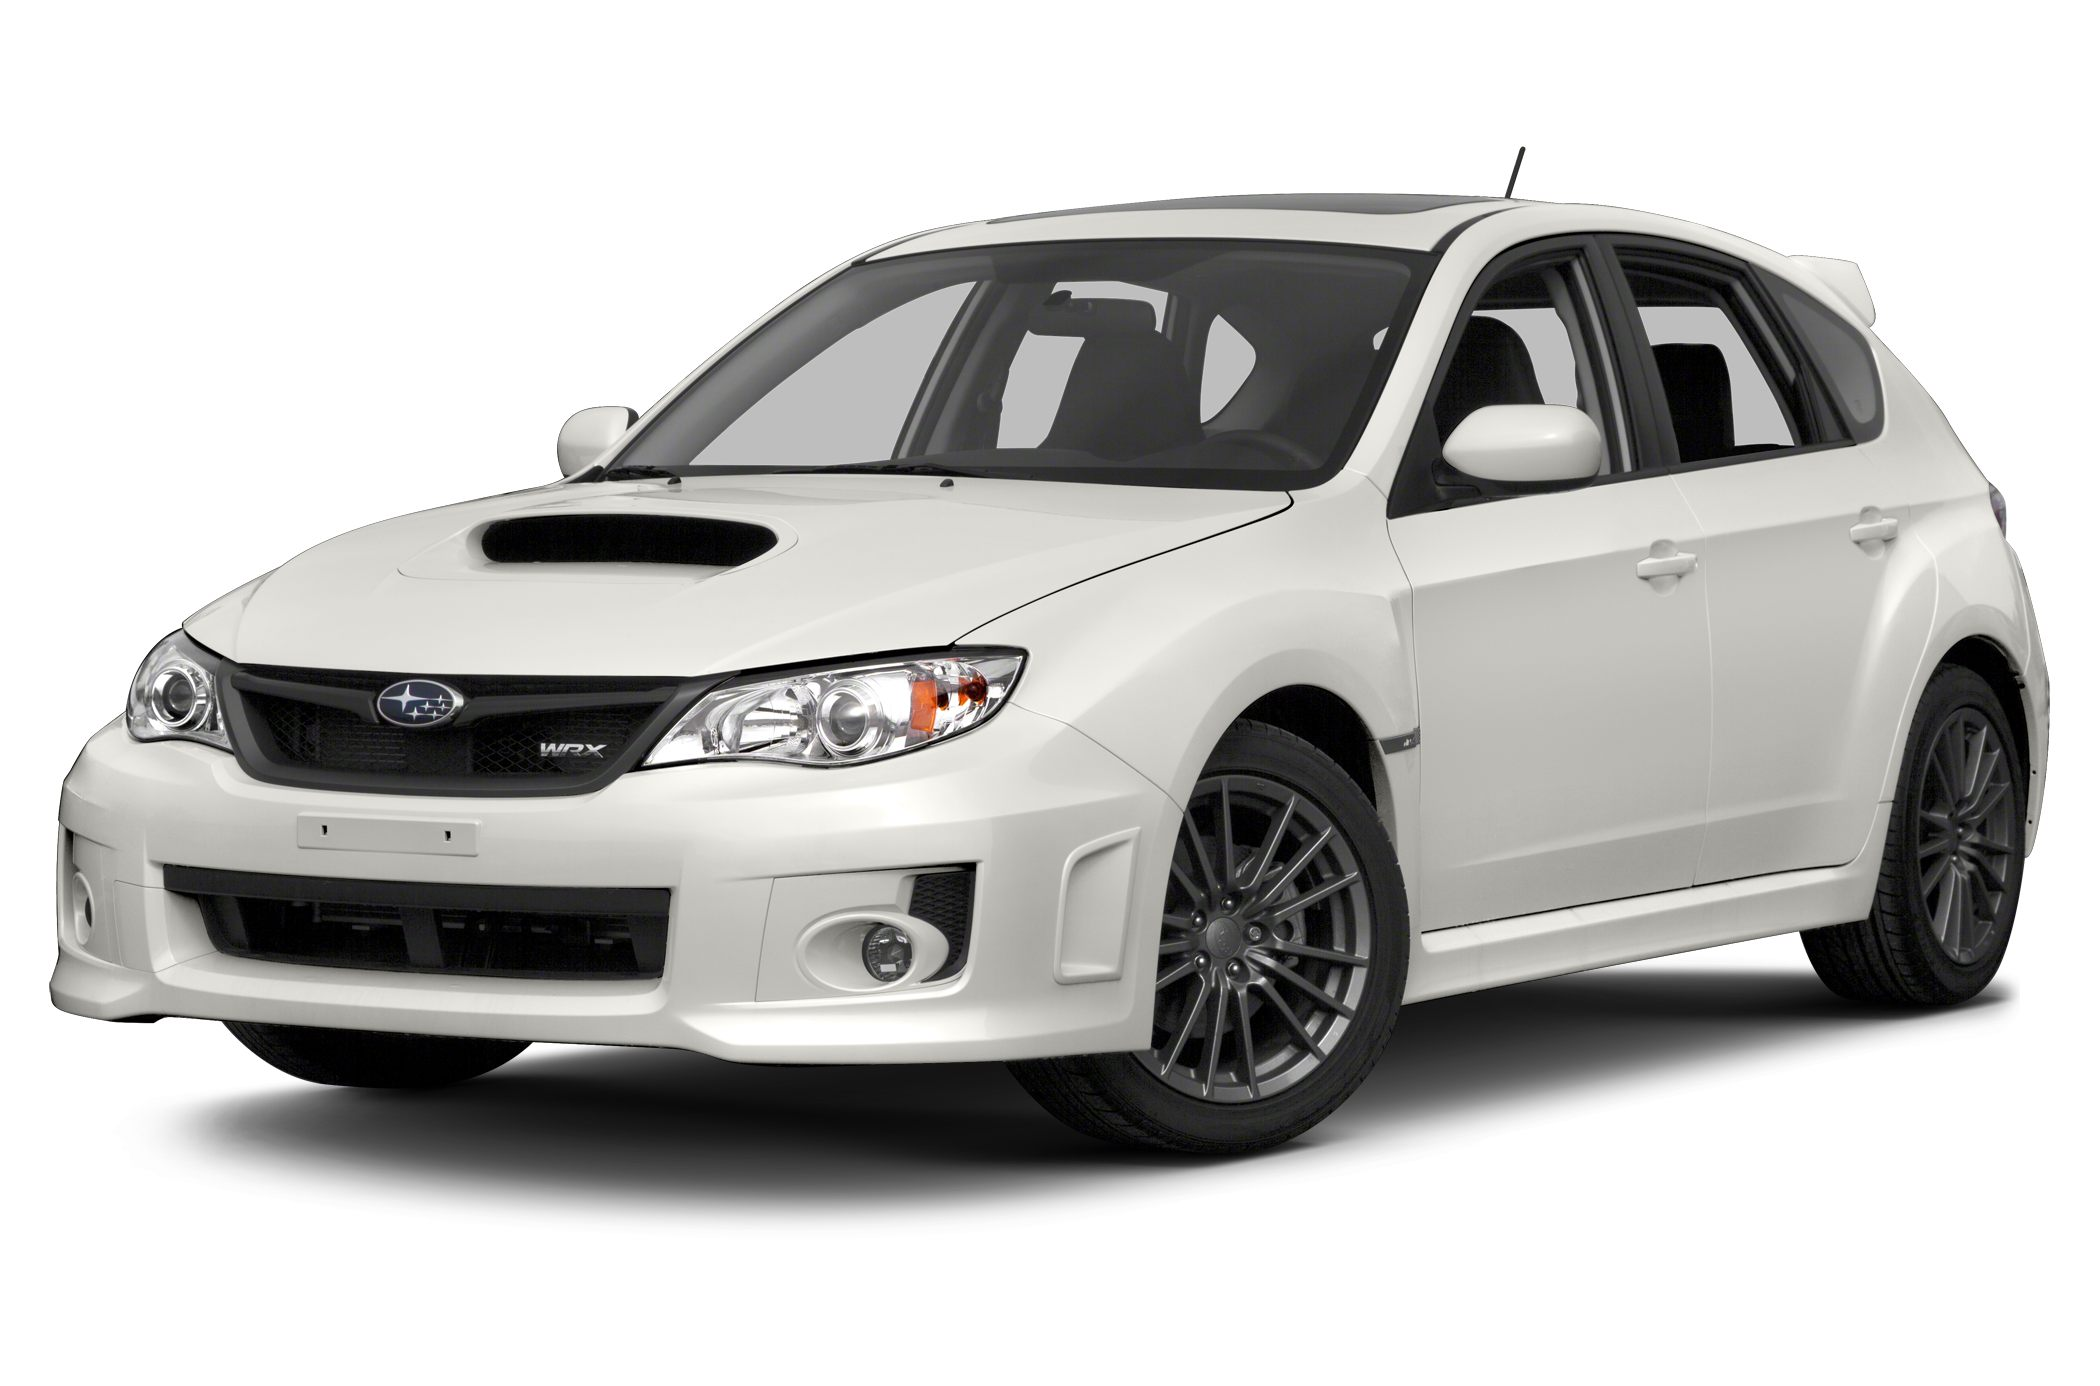 2012 subaru impreza wrx 4dr all-wheel drive hatchback specs and prices